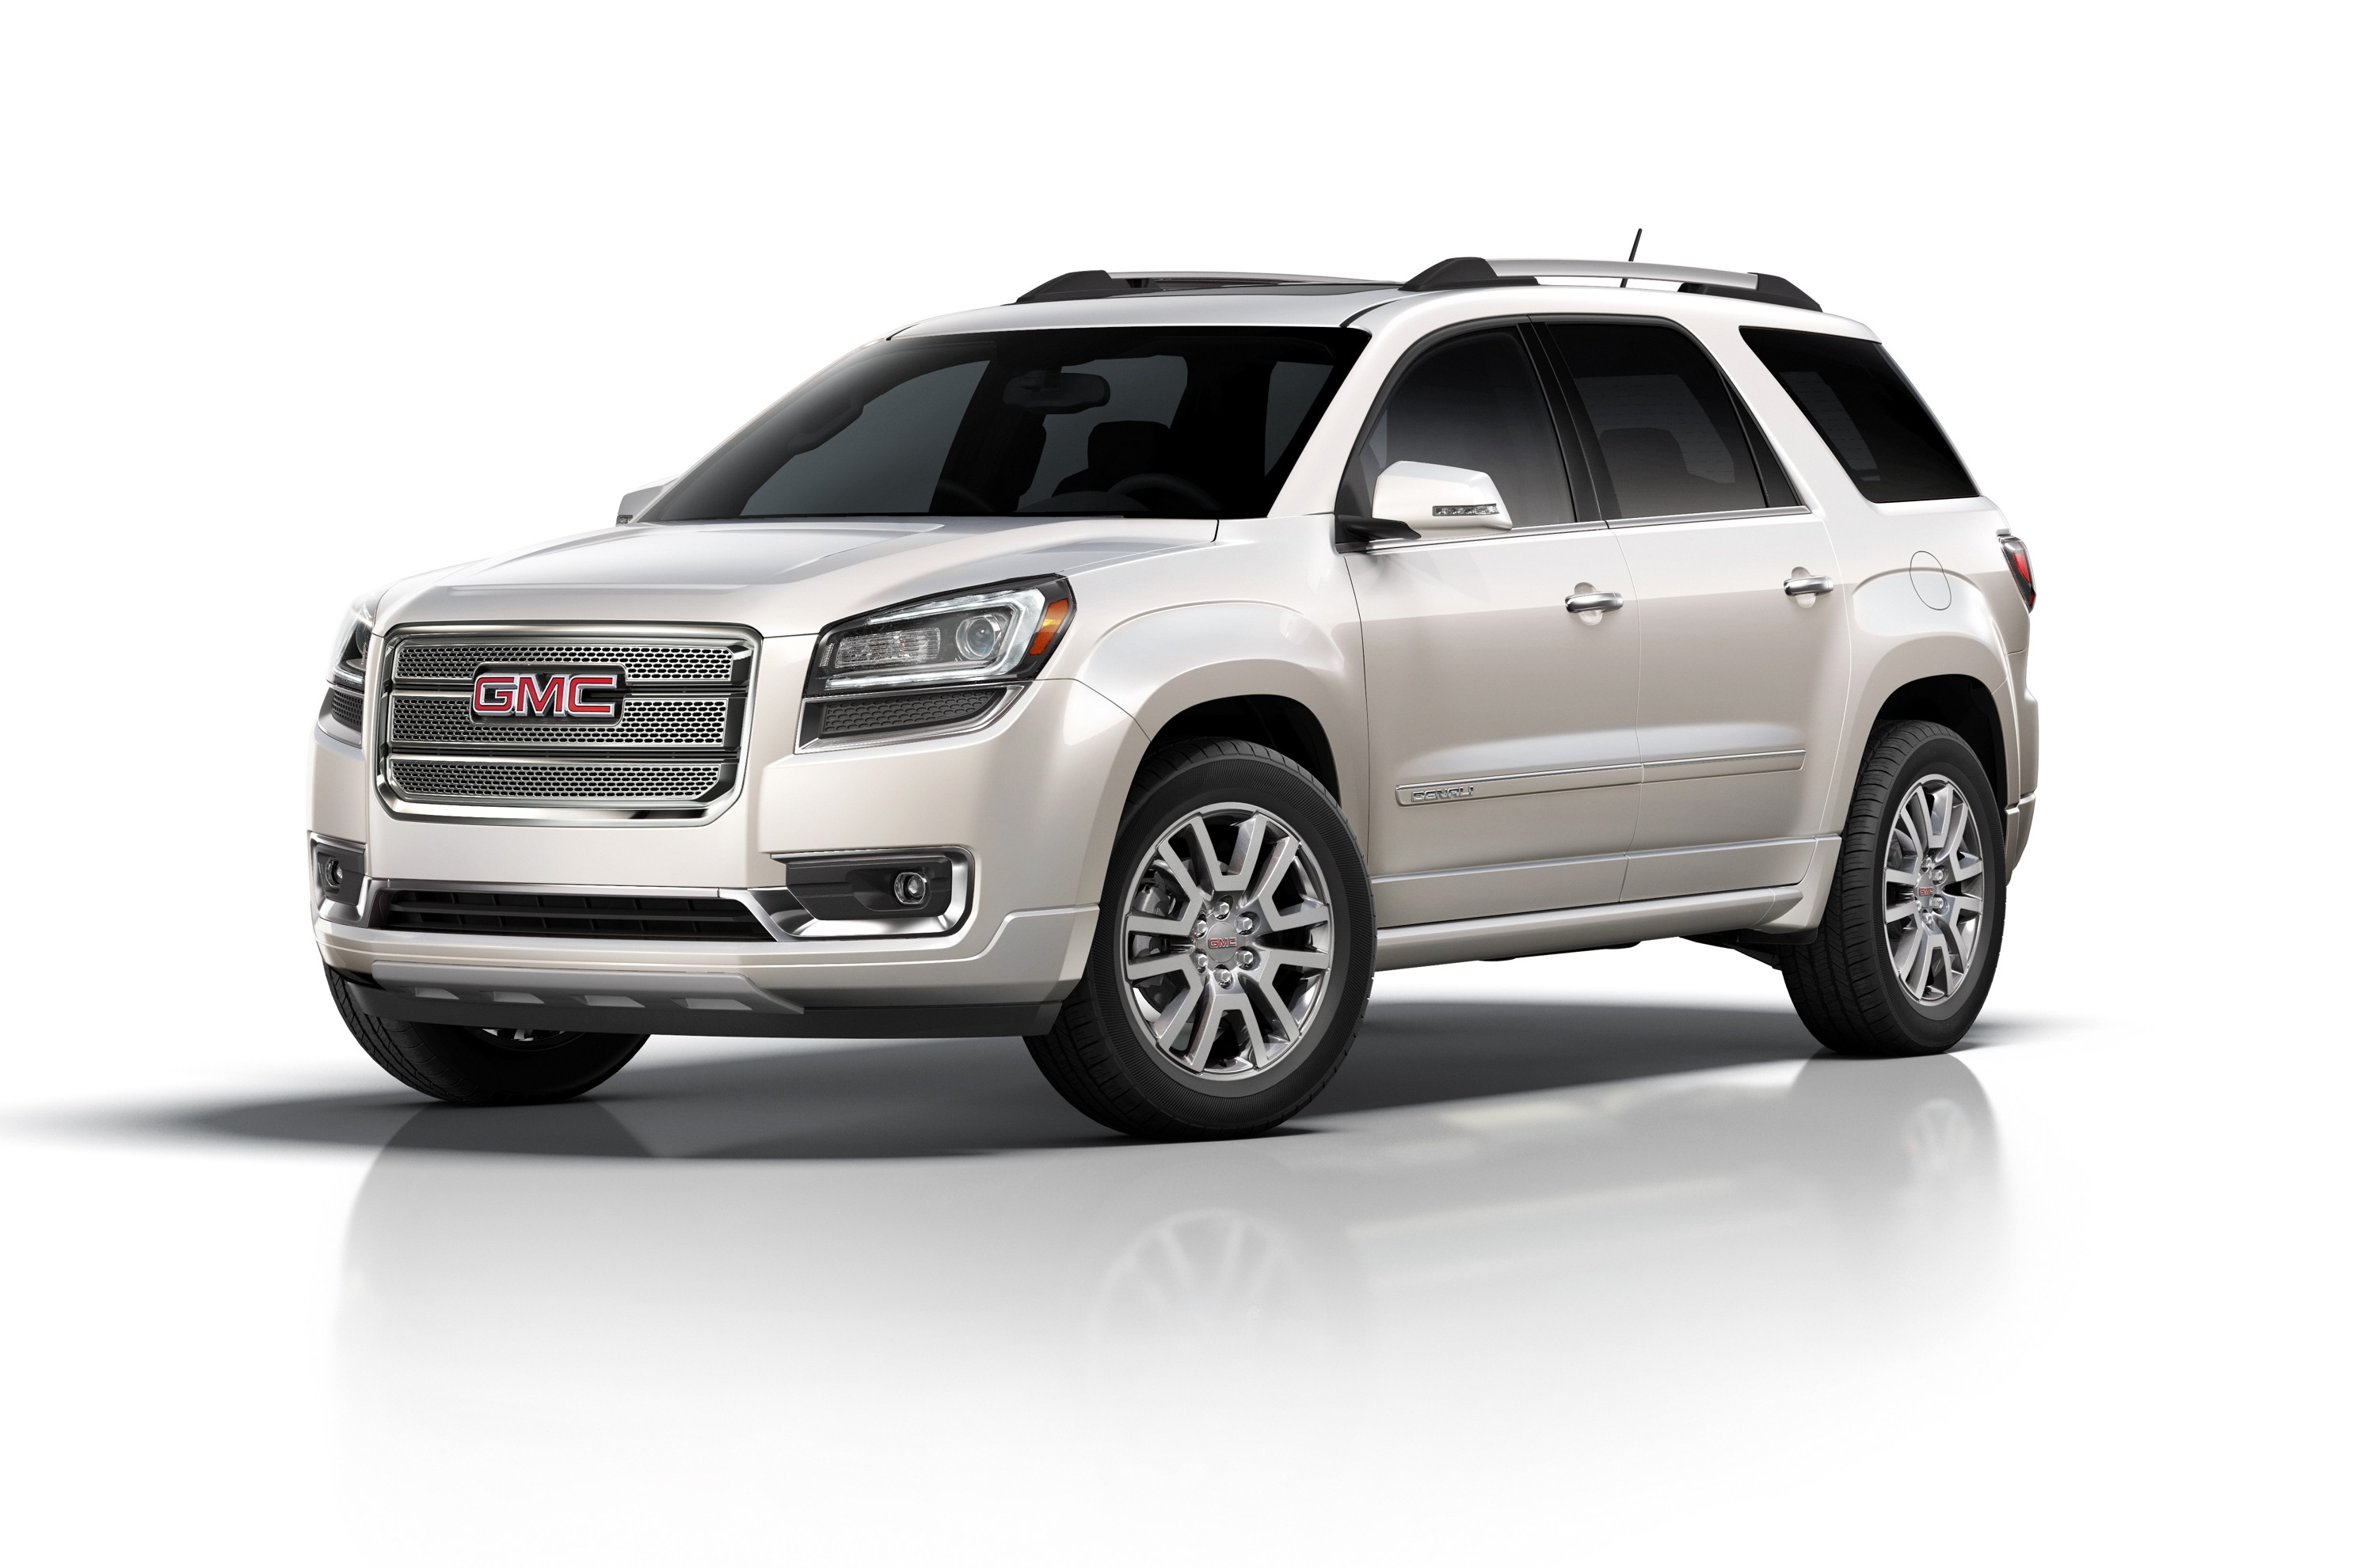 Gmc Acadia Lease >> 2016 GMC Acadia Introduced With OnStar 4G LTE - autoevolution